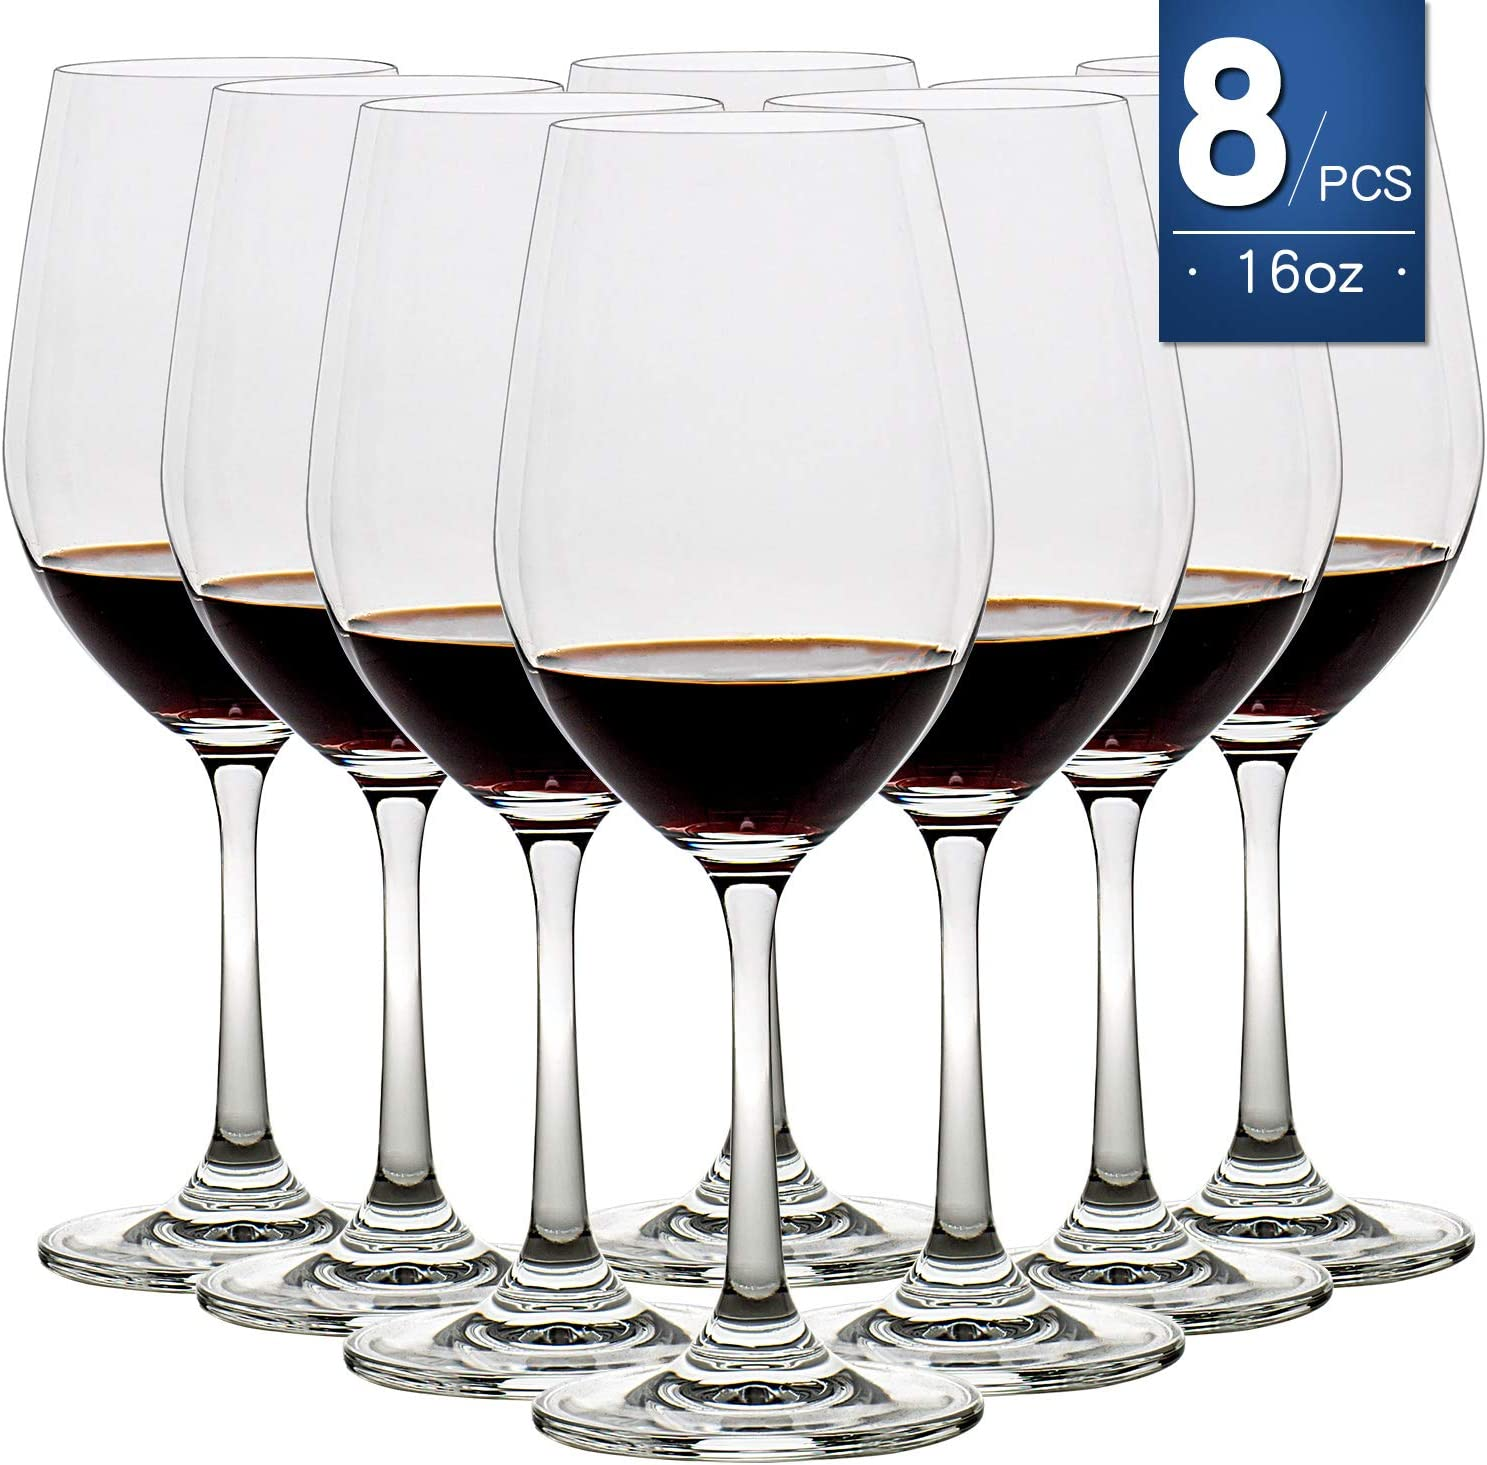 16 Ounce Set of 8,Hand Blown Crystal Wine Glasses Red/White Wine Glass Made from Durable Crystal Glass, Perfect for Any Occasion